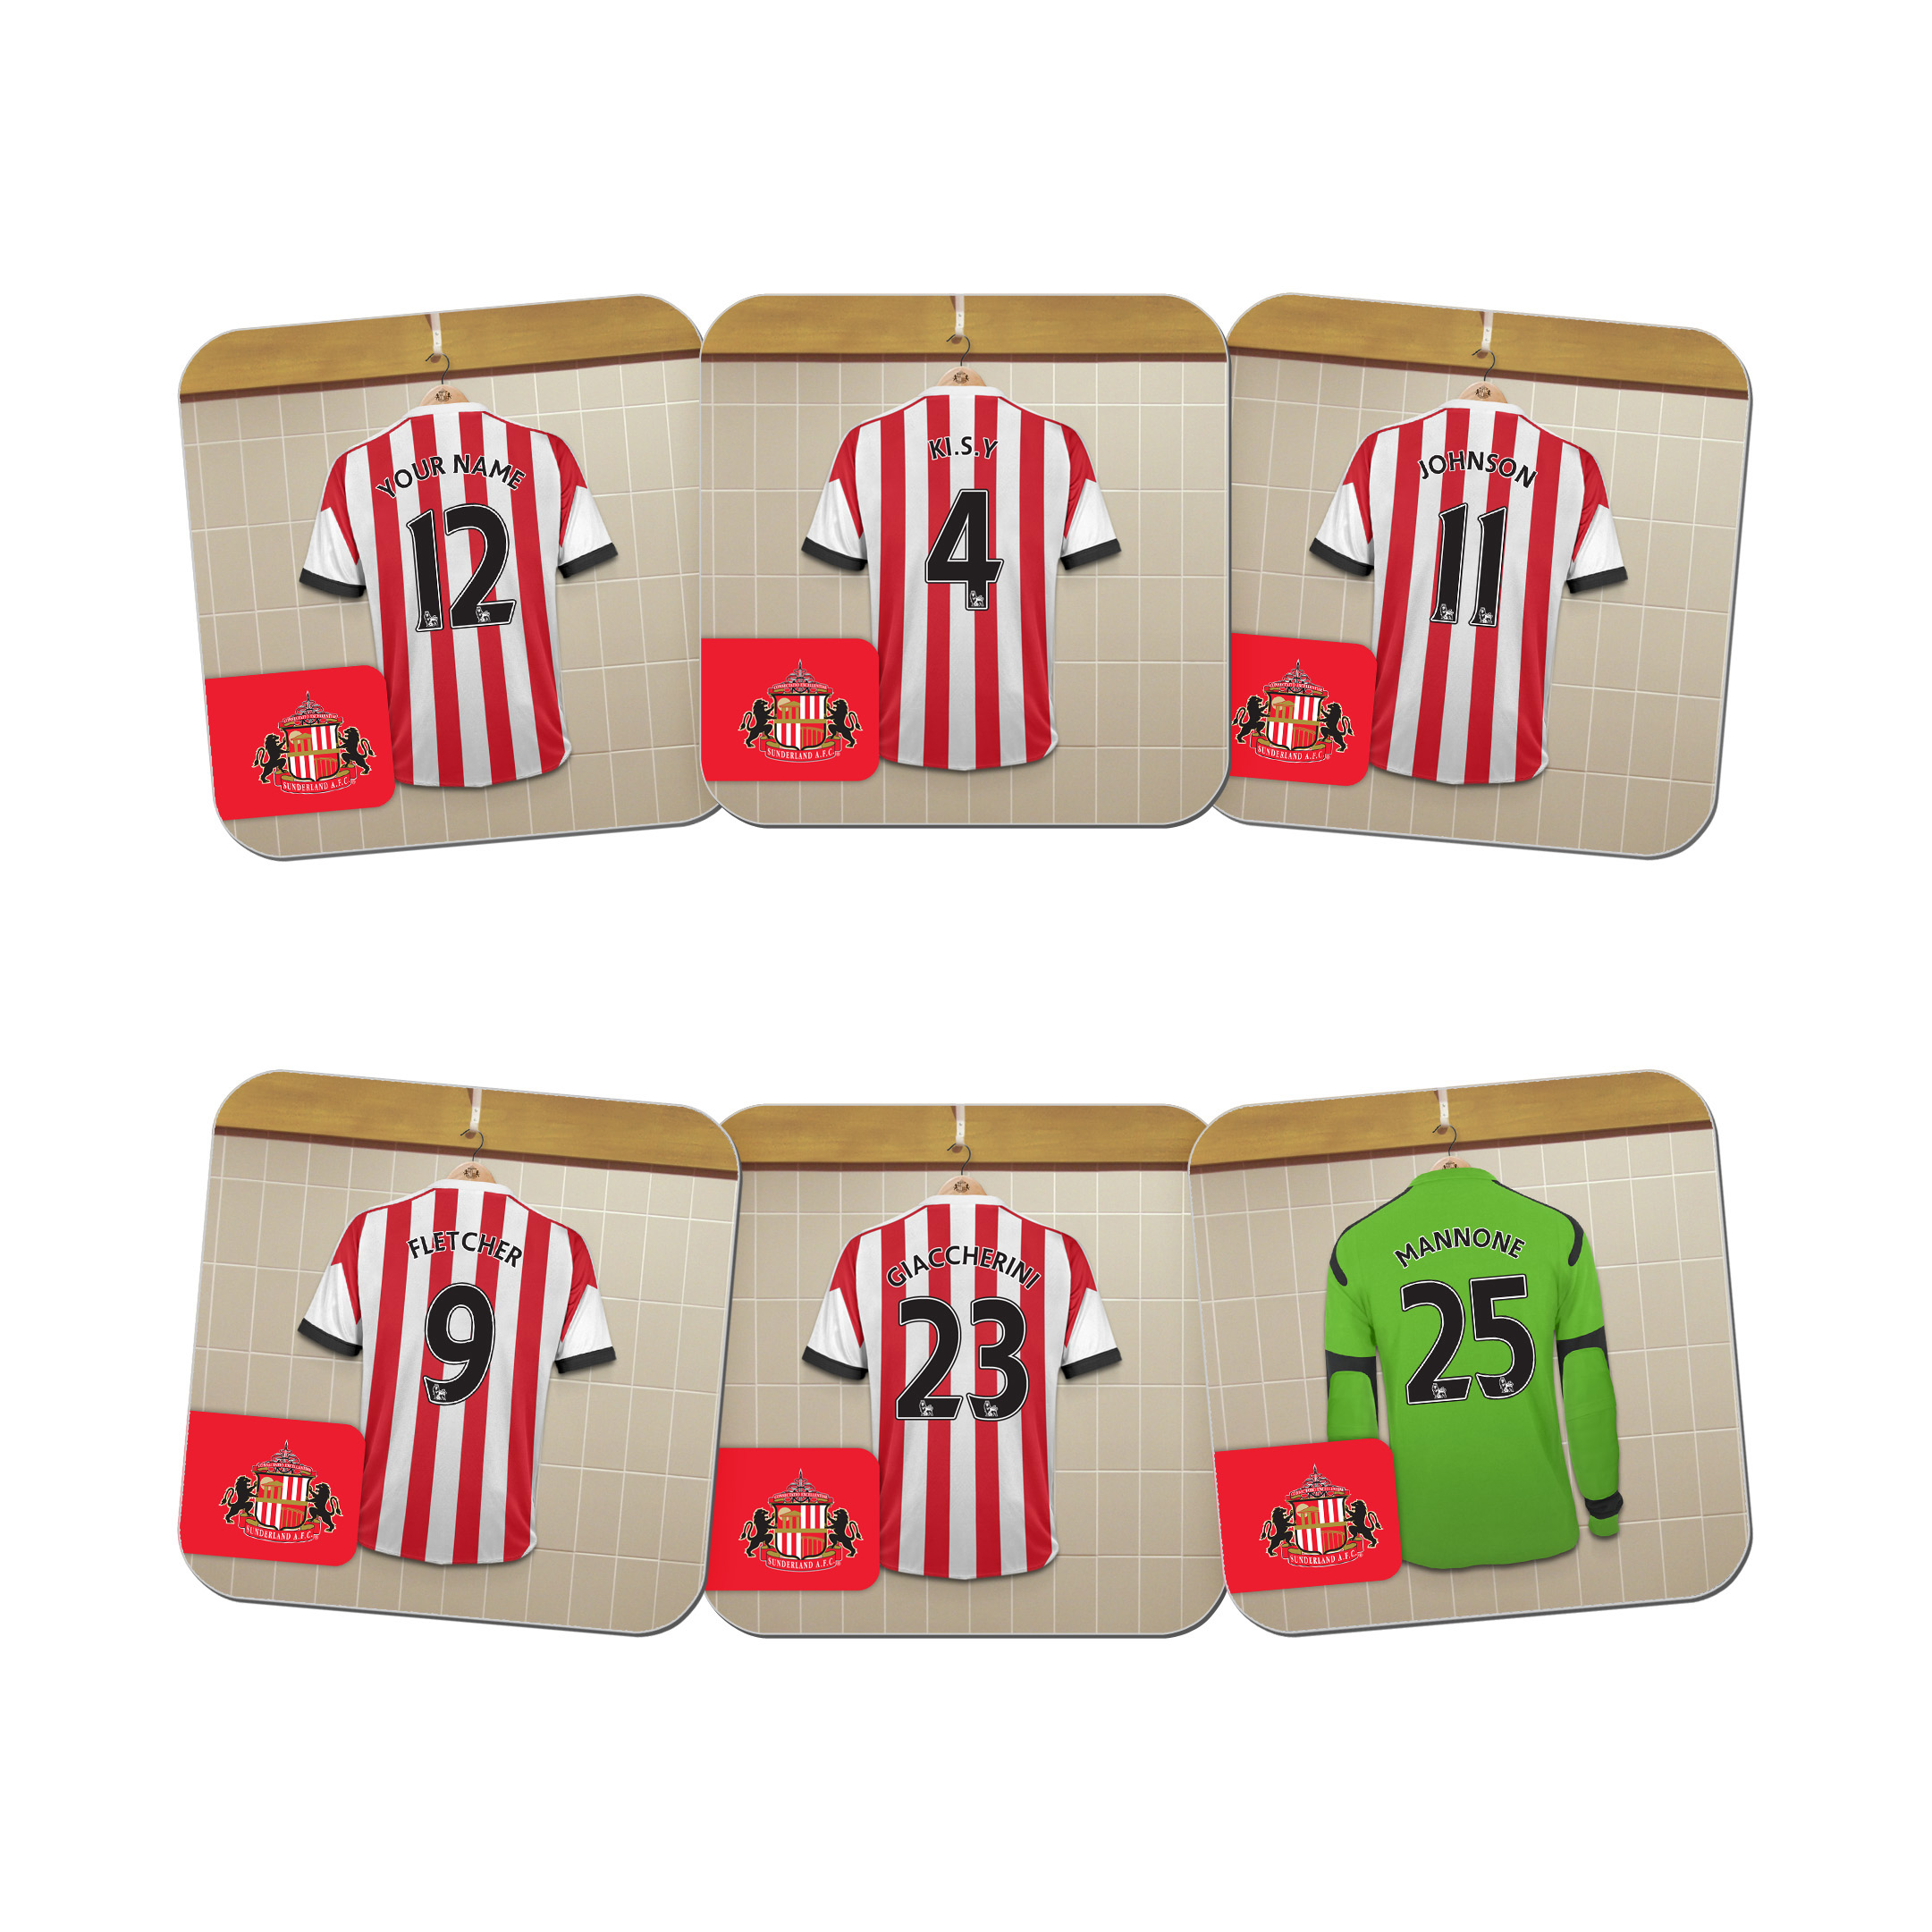 Sunderland Personalised Dressing Room Coasters 6 Pack